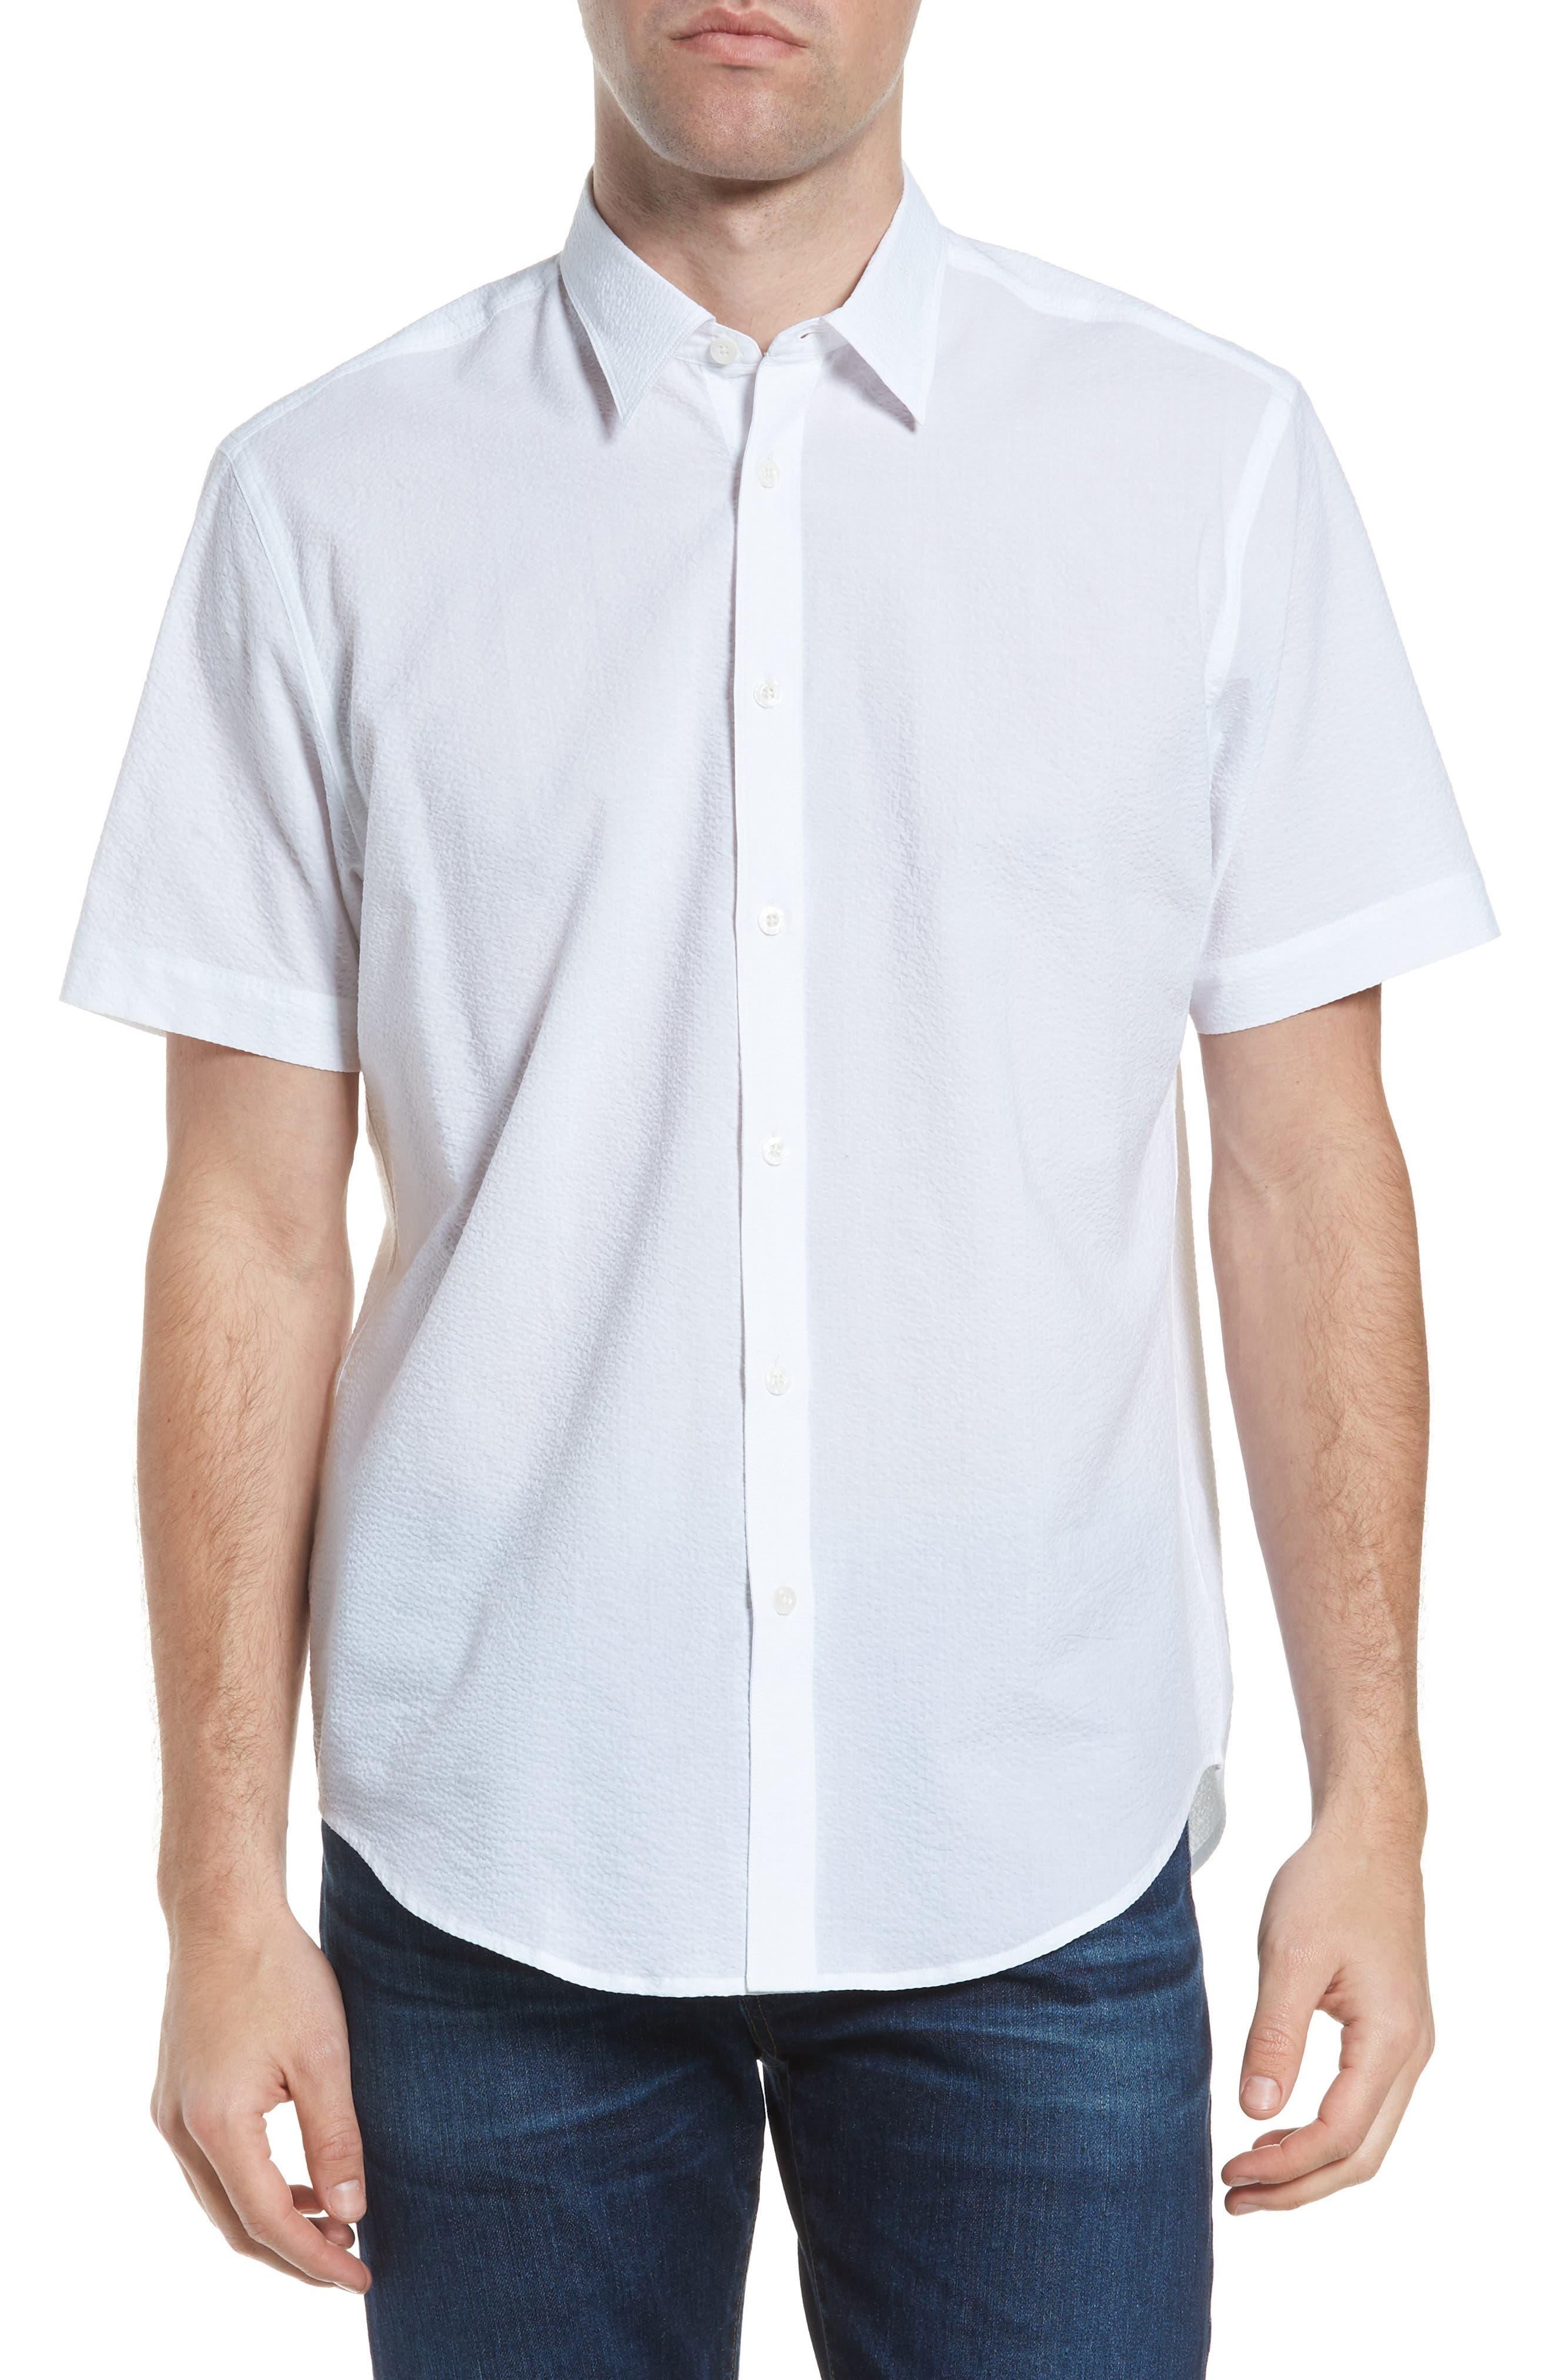 Sucker Regular Fit Seersucker Sport Shirt,                         Main,                         color, 100